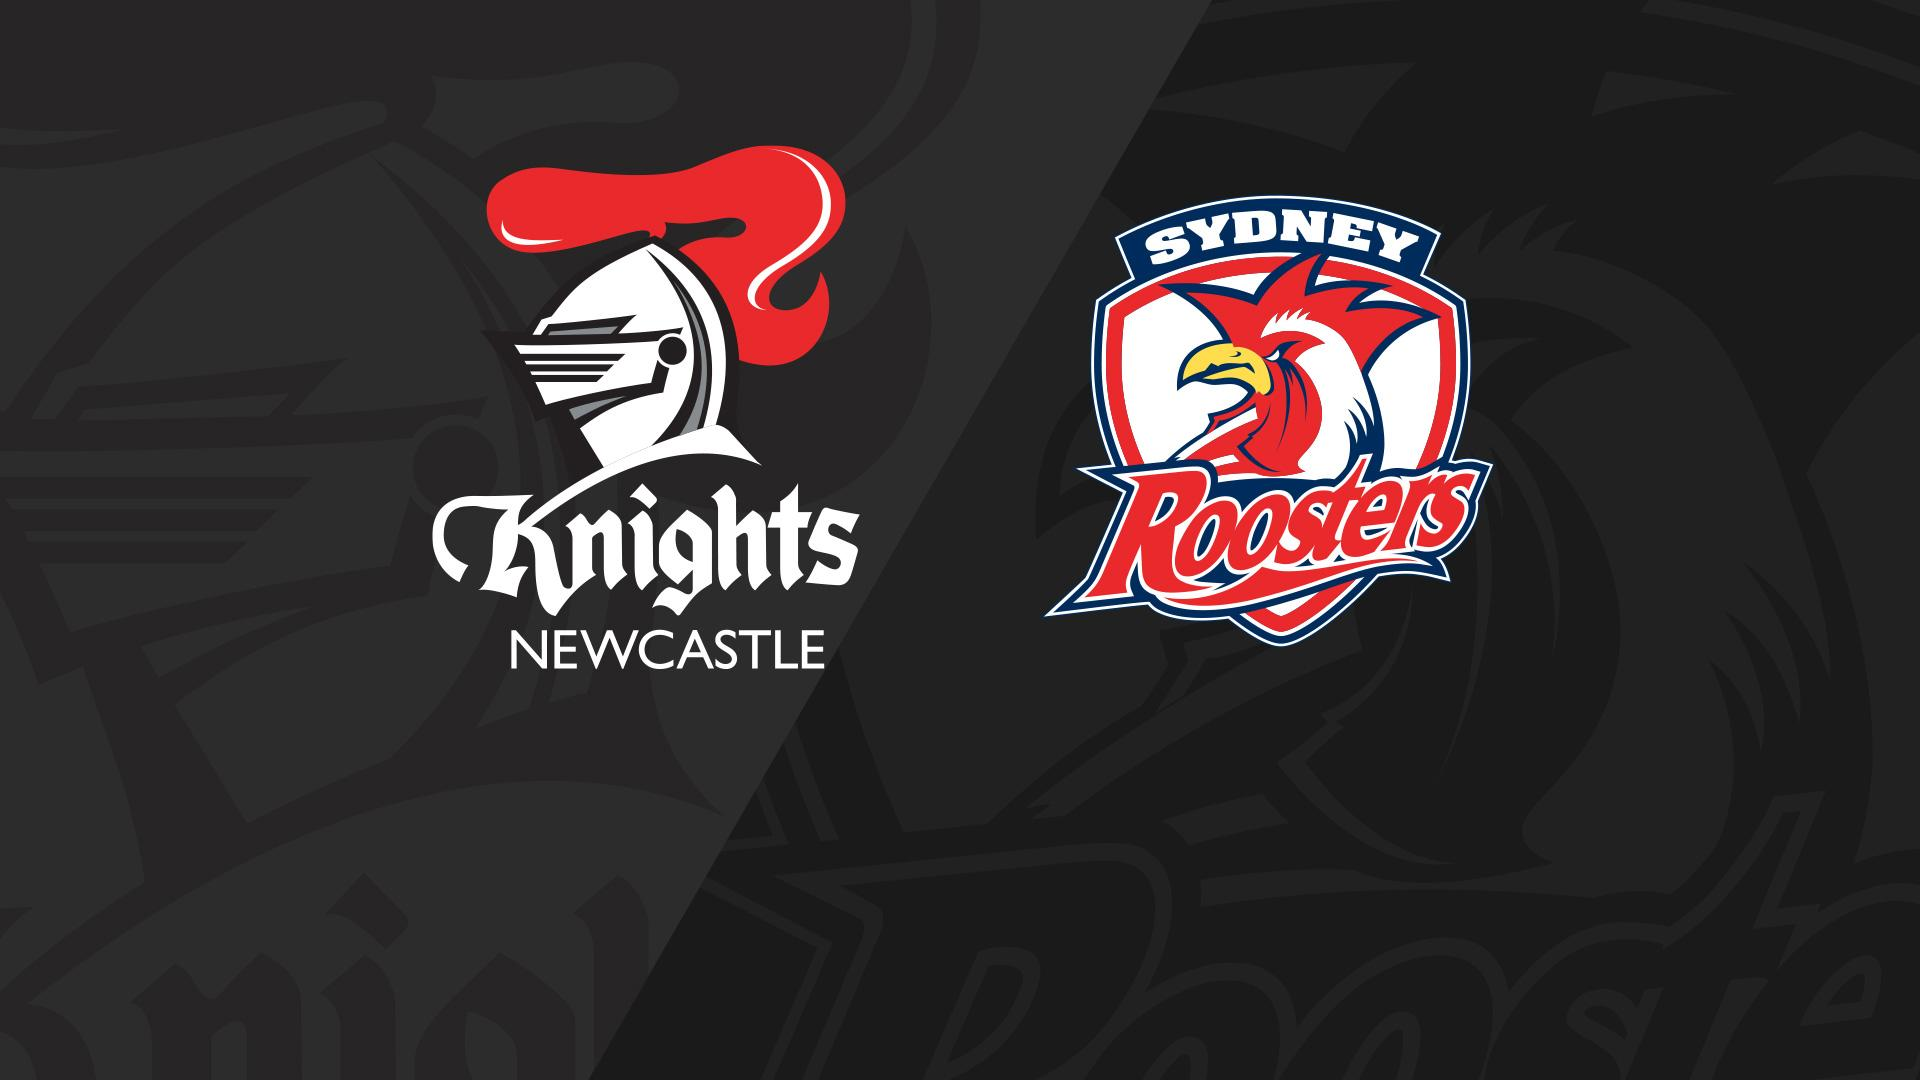 Full Match Replay: Knights v Roosters - Round 14, 2018